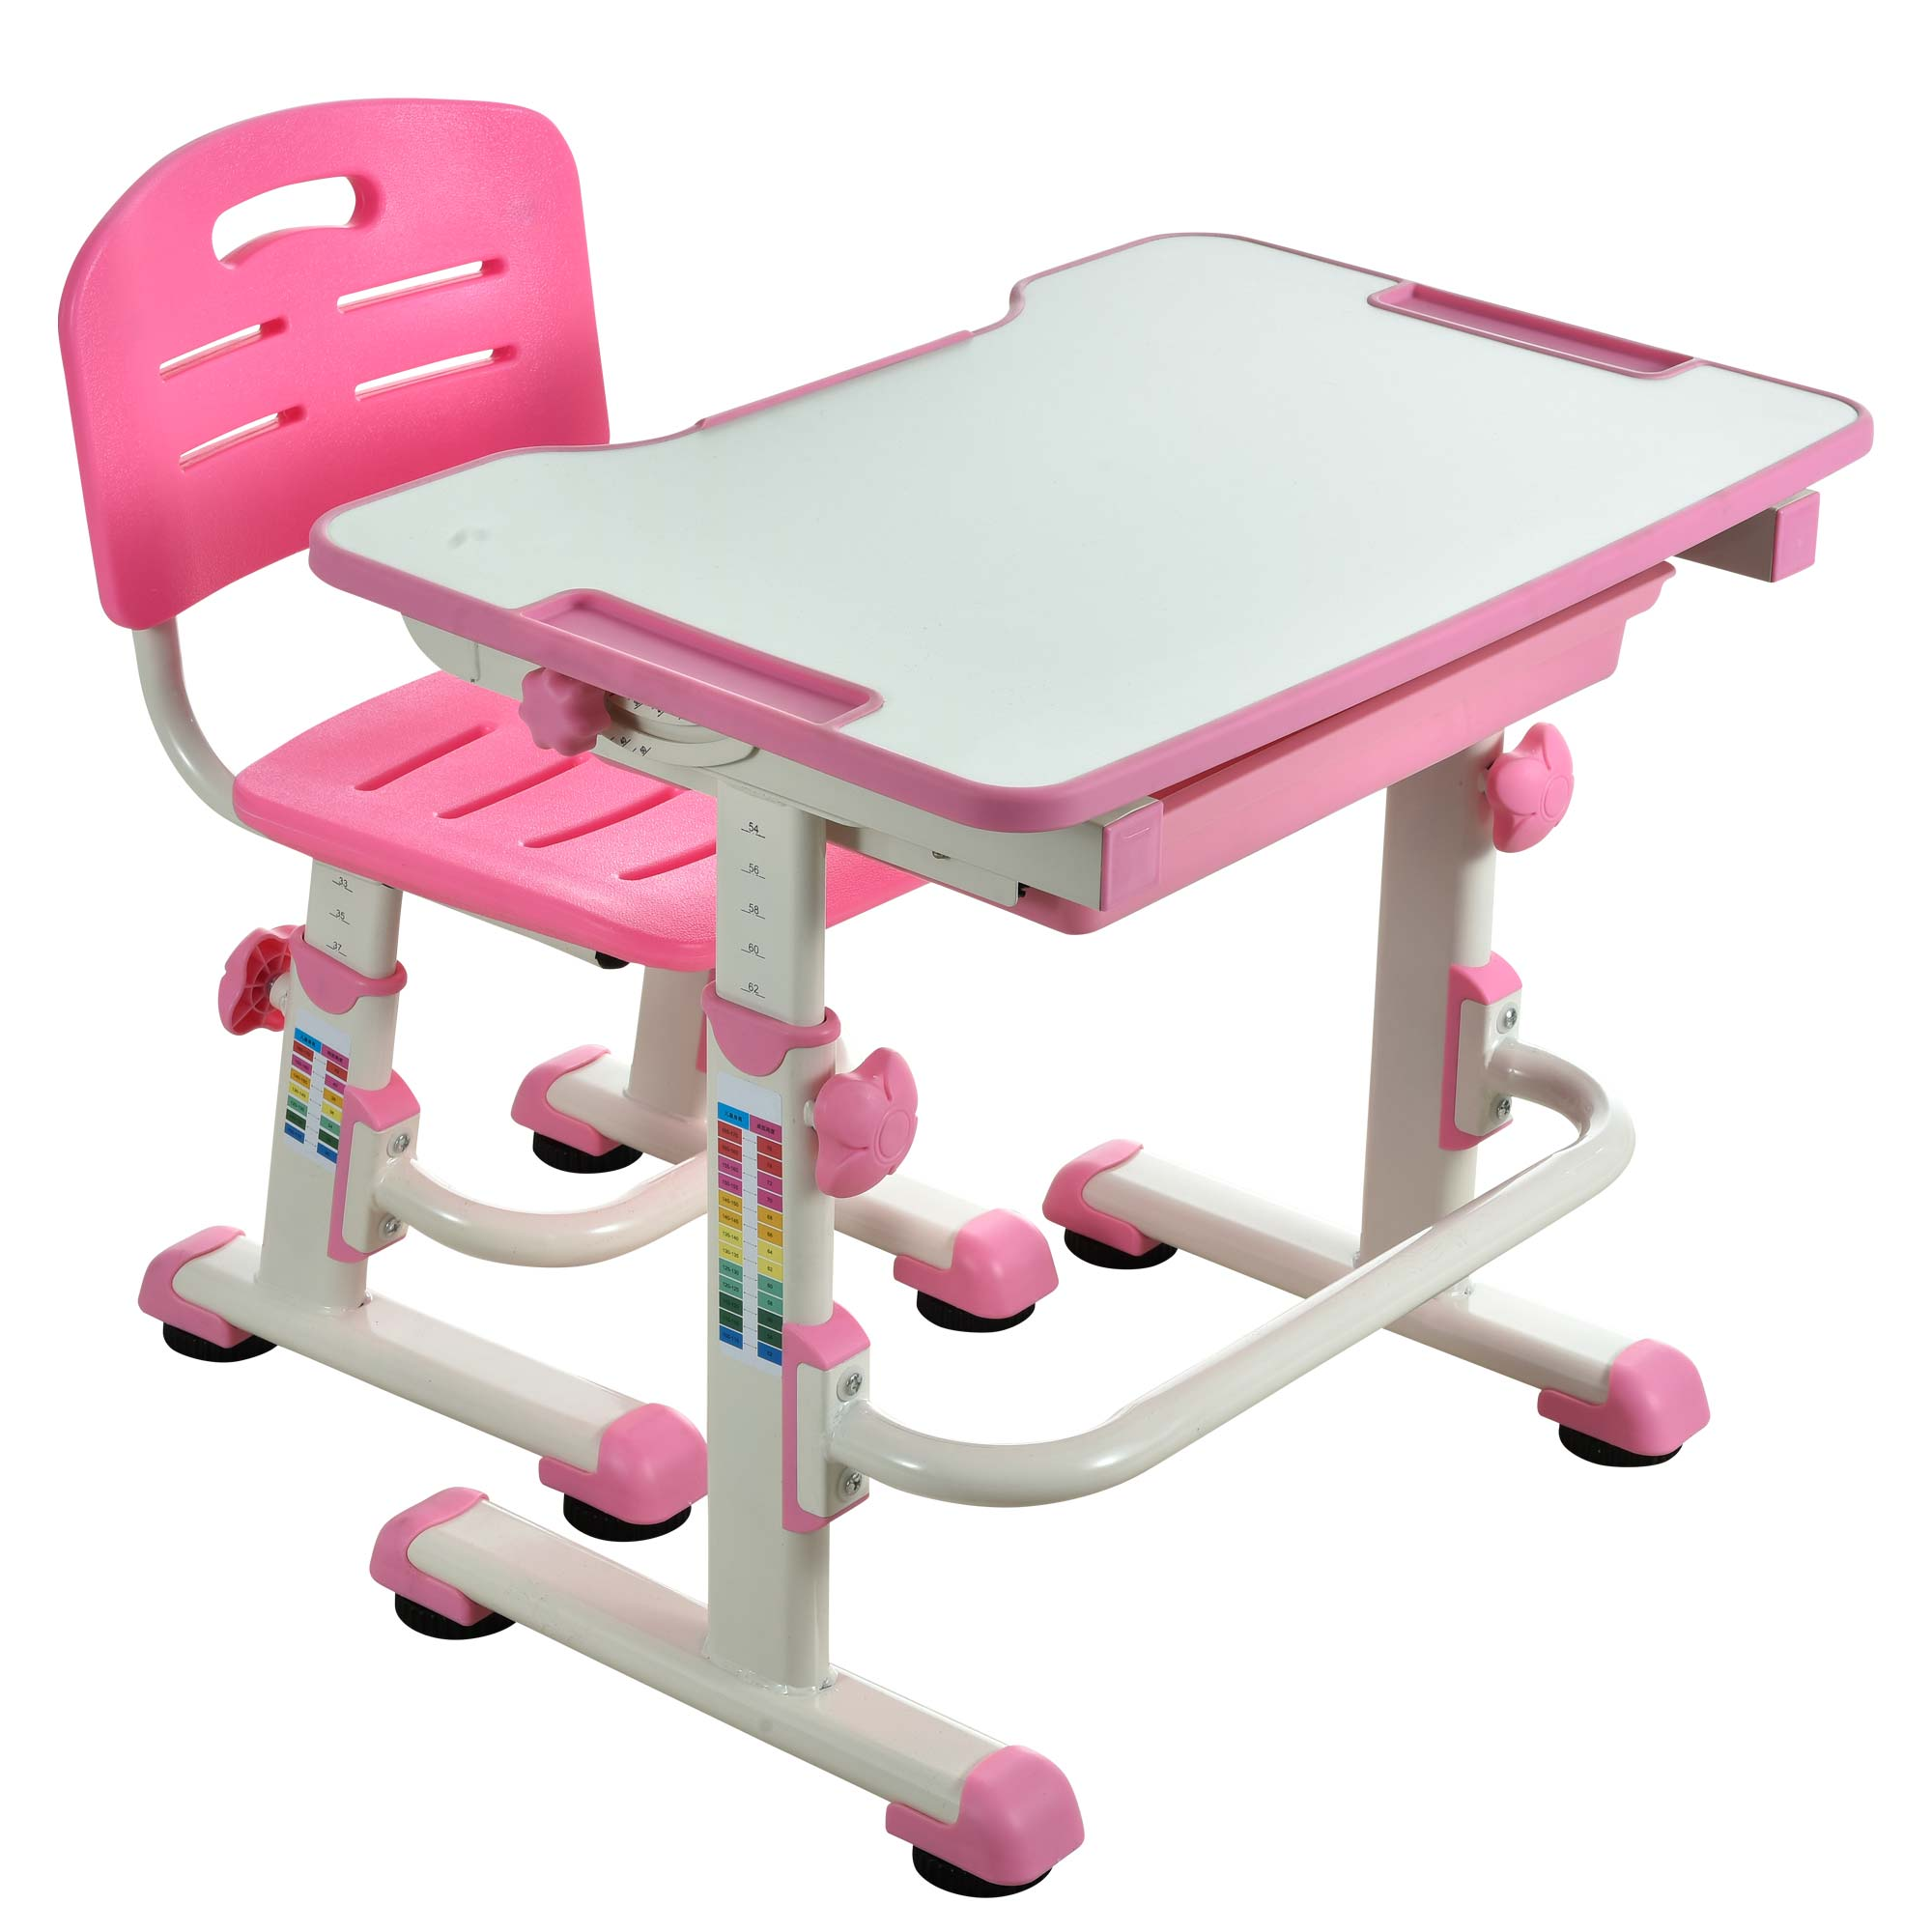 kids-table-and-chair-height-adjustable-children-desk-learning-table-tilting-desktop-pink-desk-for-girls-09